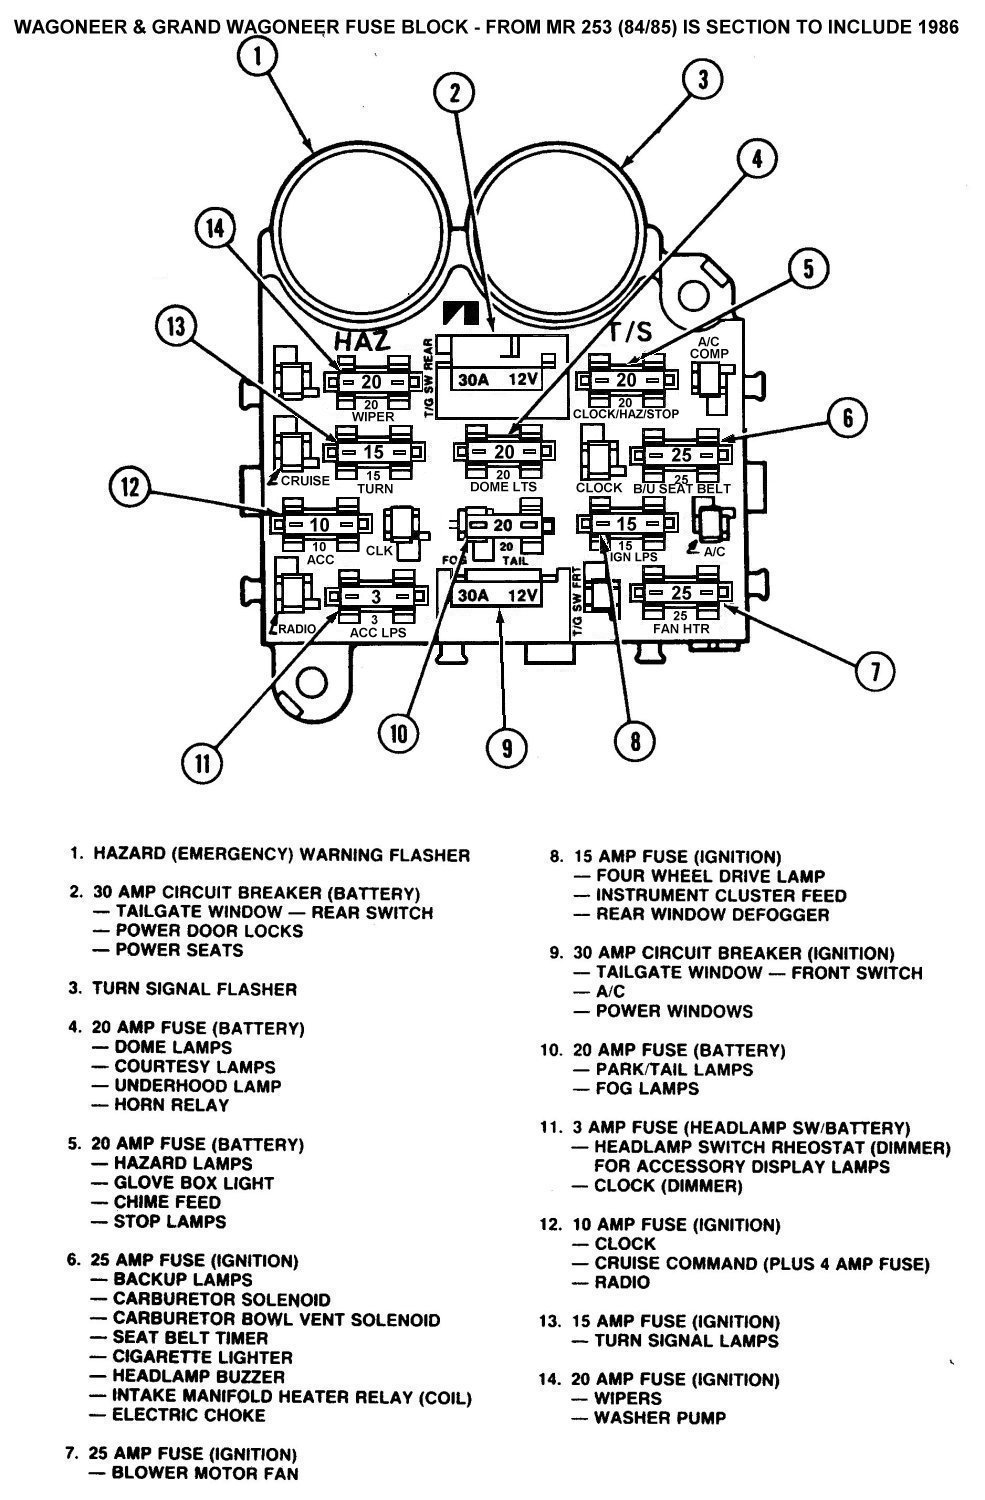 hight resolution of 84 porsche 944 fuse box diagram wiring diagram and engine diagram 1983 porsche 944 dme relay